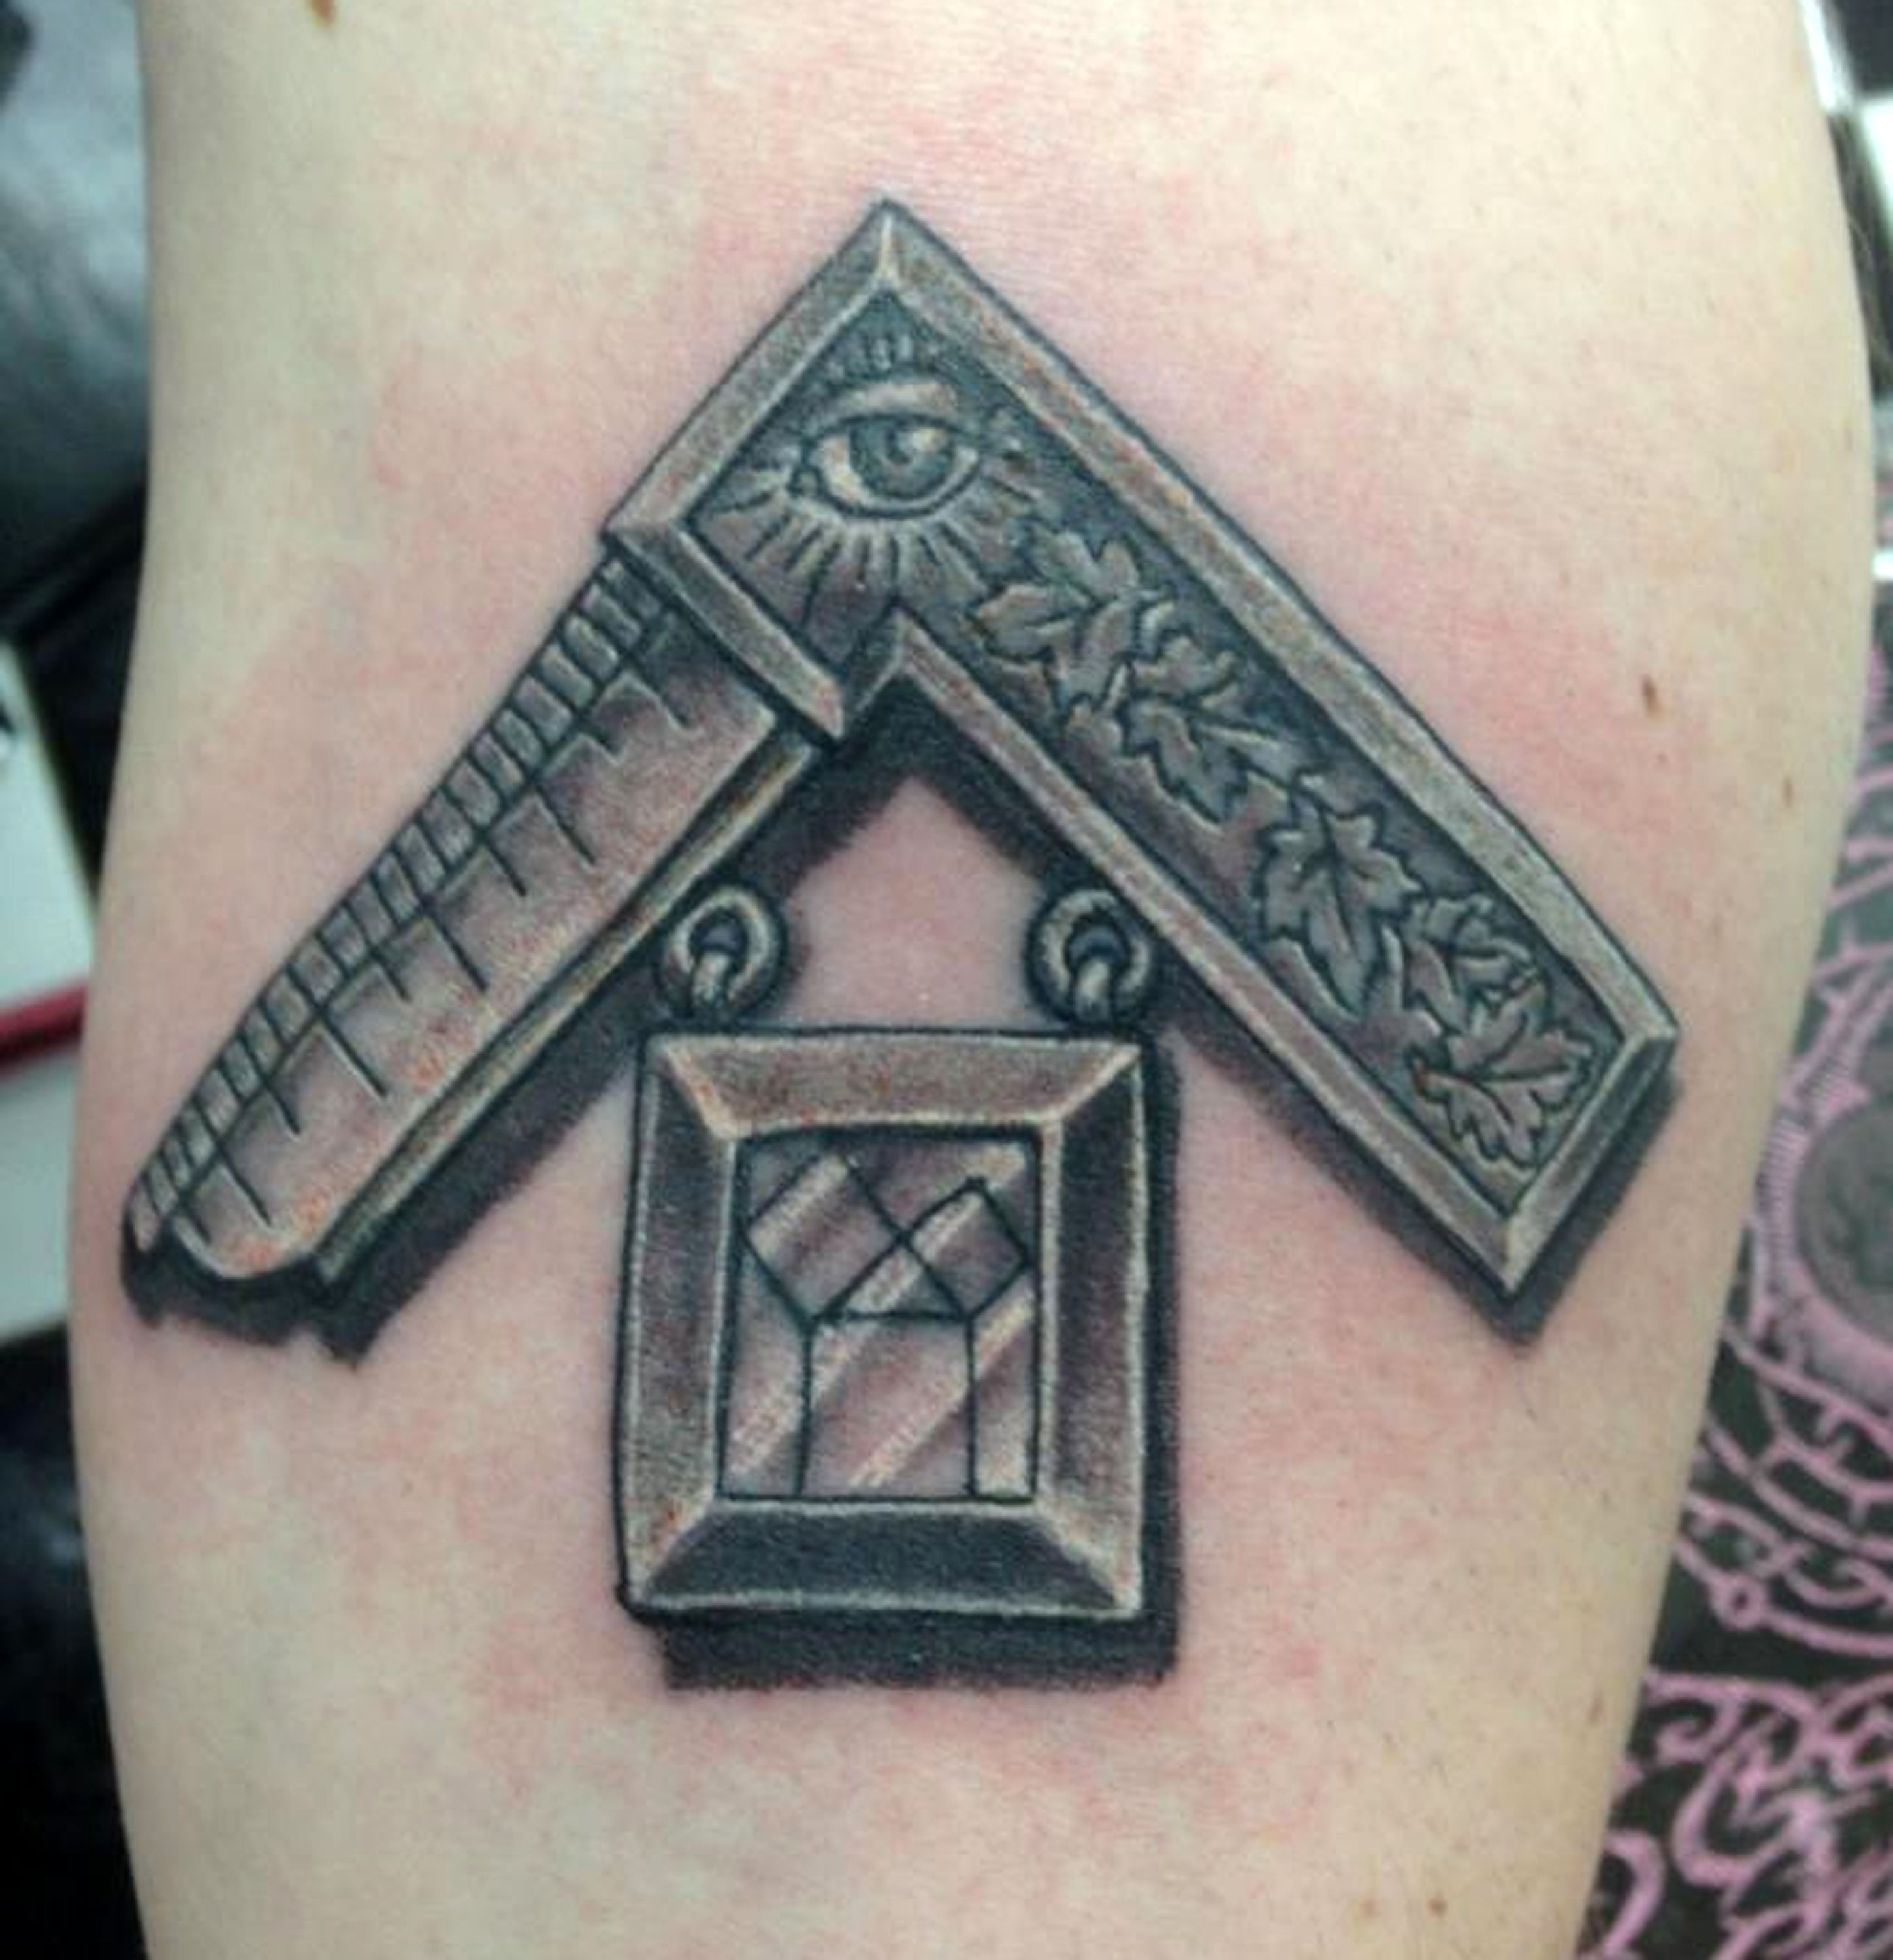 Canadian past master by fish whole addiction tattoo for Coral springs tattoo